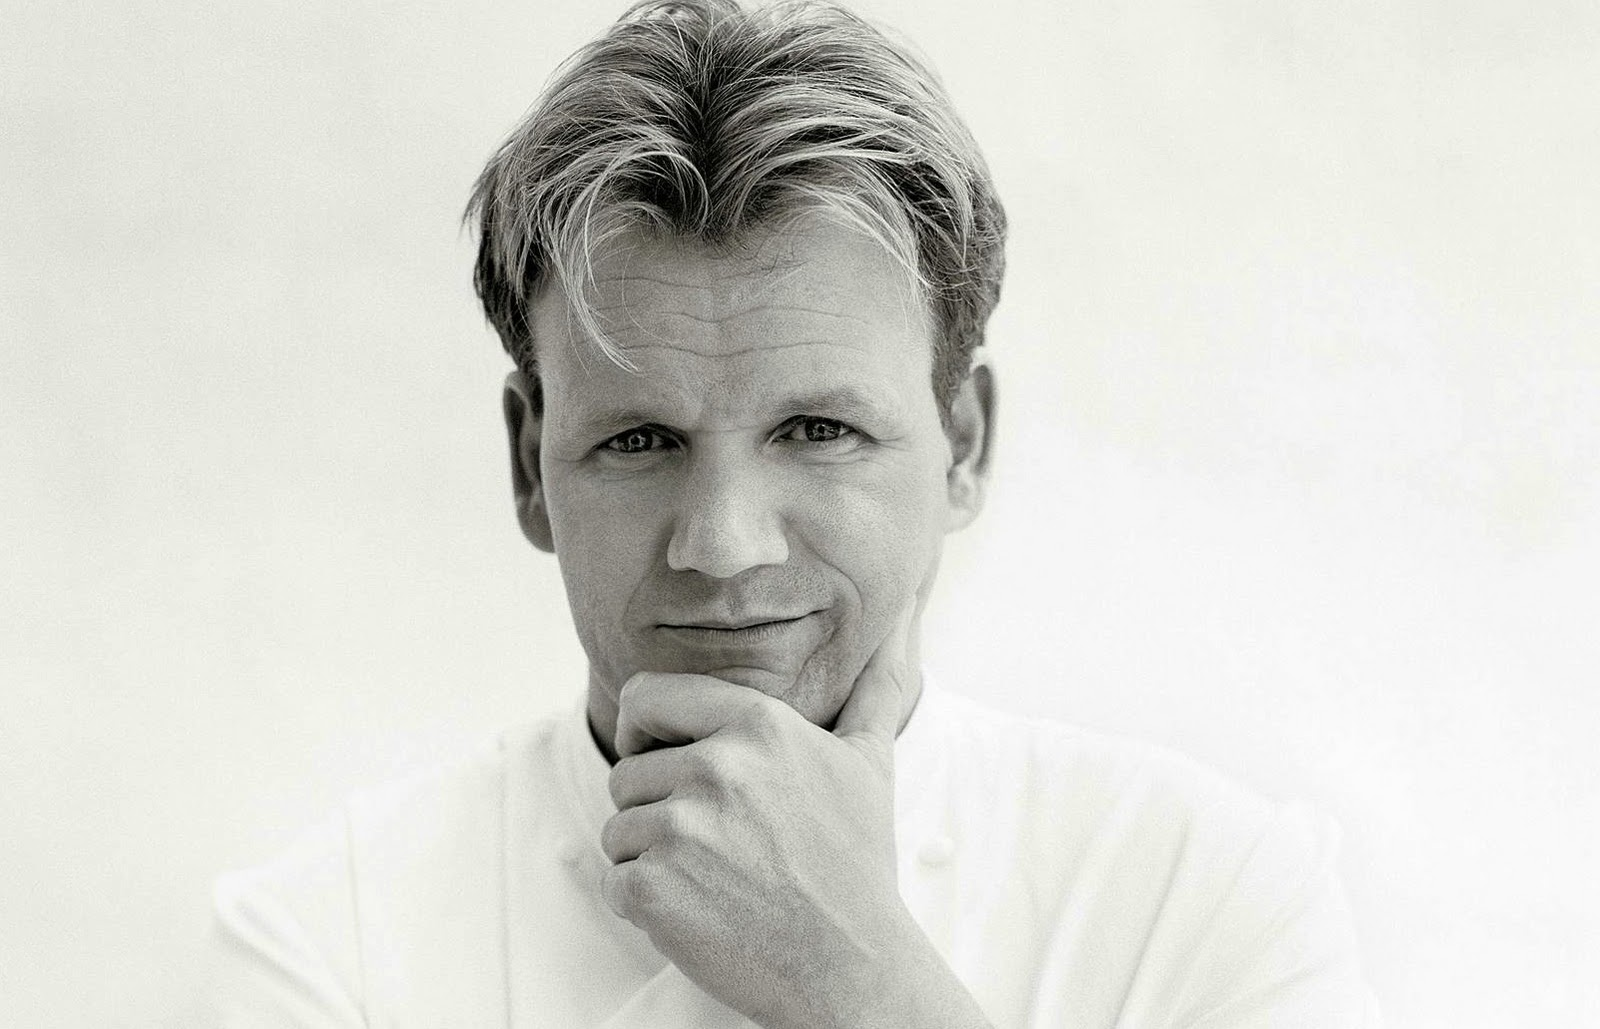 Gordon Ramsay widescreen wallpapers